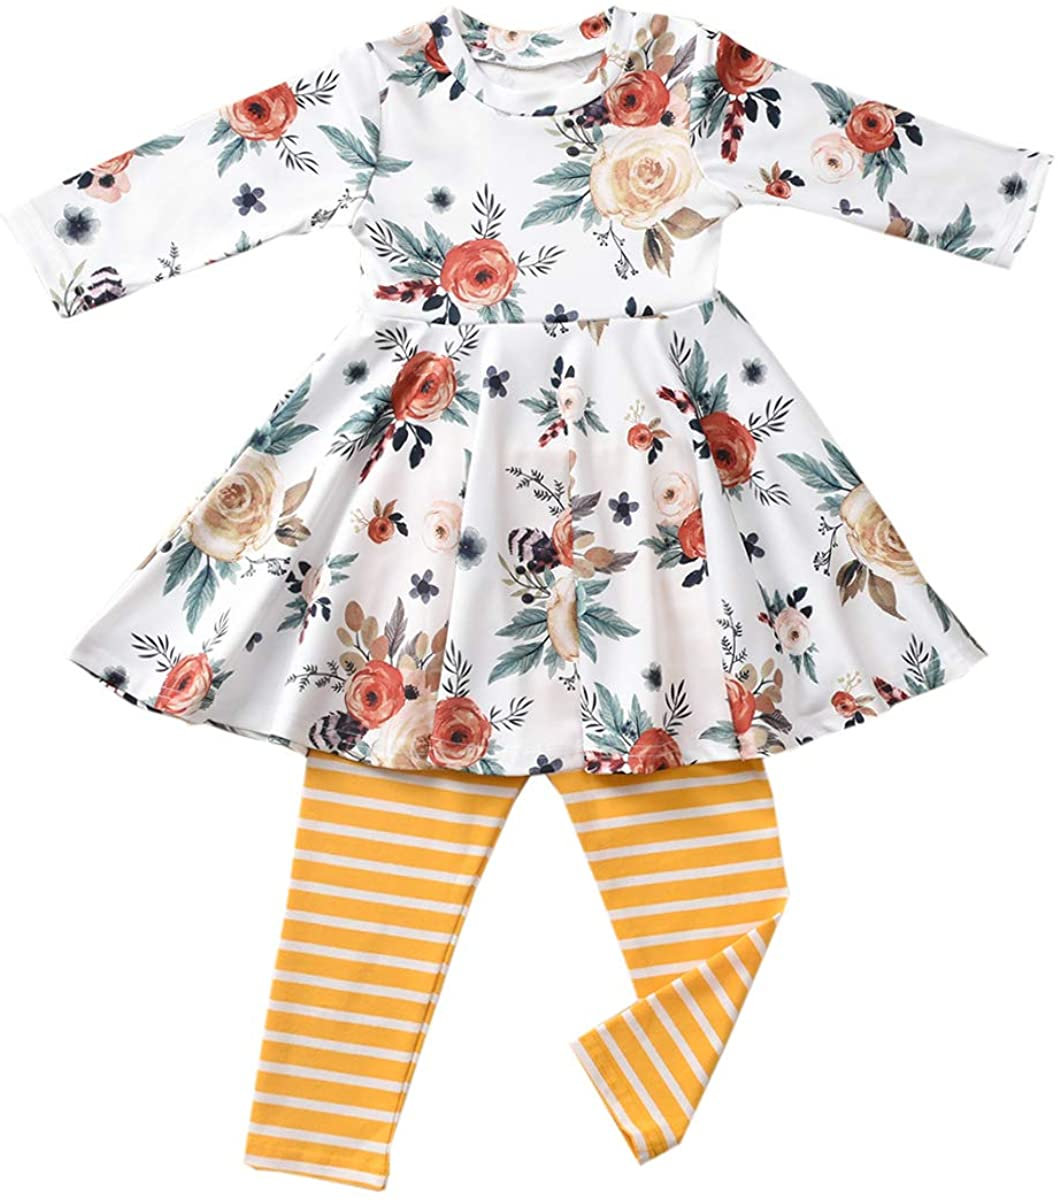 Fioukiay Special sale item Recommended Toddler-Girls-Fall-Clothes-Set Little Girls Highlow Tun